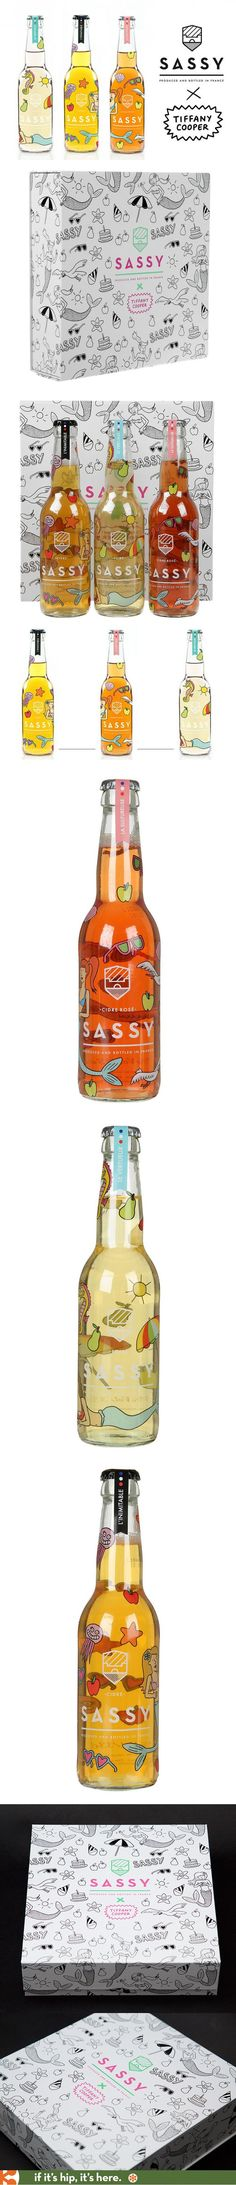 Sassy Ciders hired French illustrator Tiffany Cooper to design a special boxed set of three limited edition bottles for Colette.